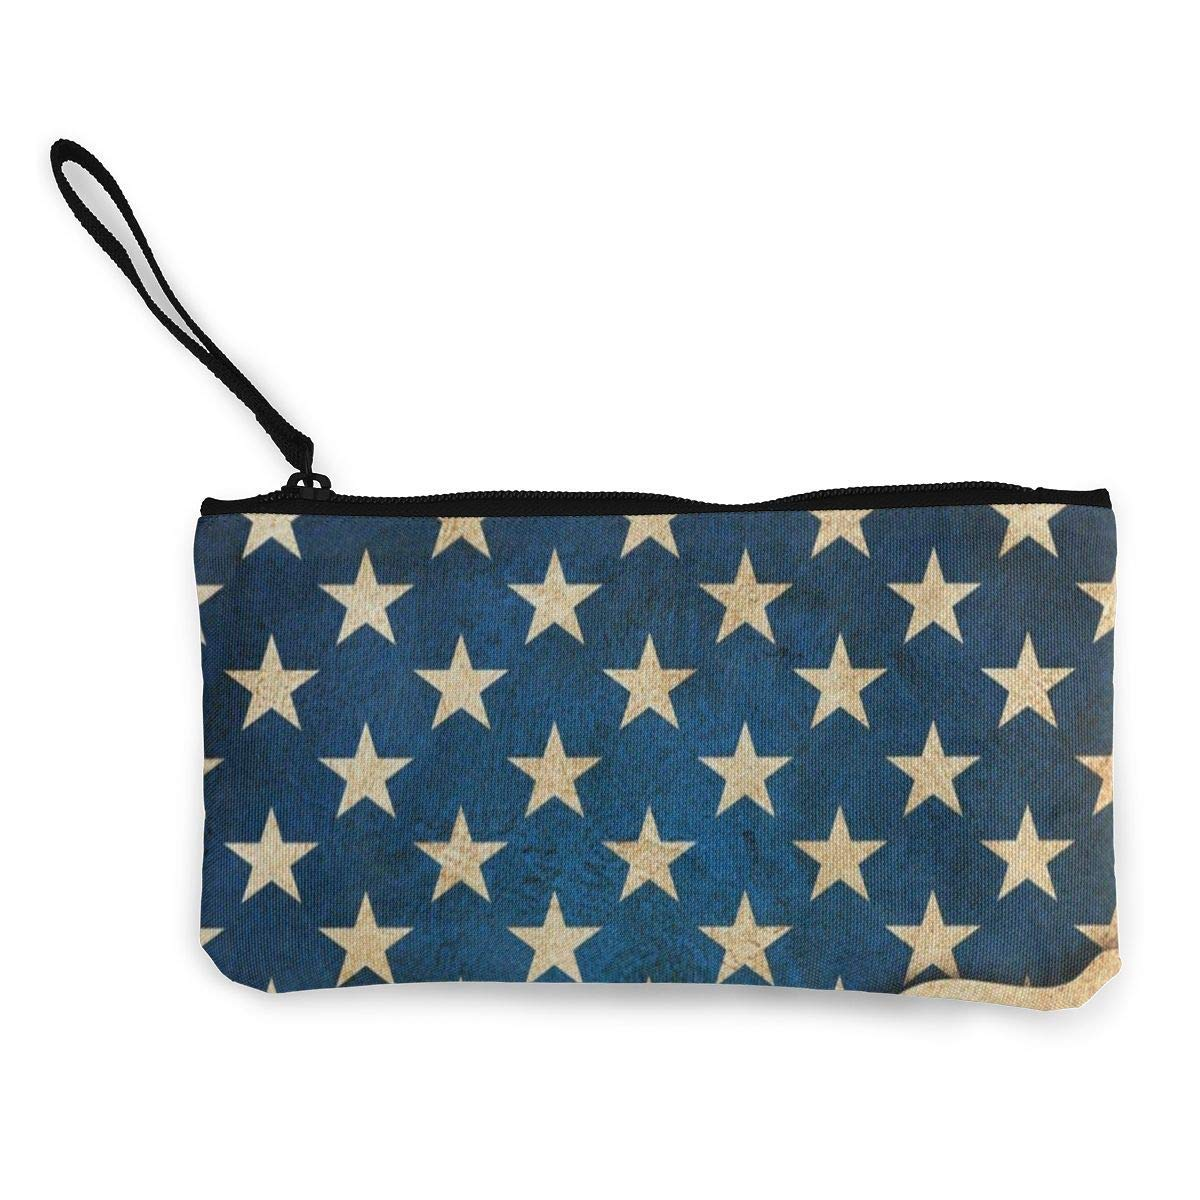 uhfgyhuihjf Canvas Coin Purse 4Th Of July Indenpendence Day Customs Zipper Pouch Wallet For Cash Bank Car Passport